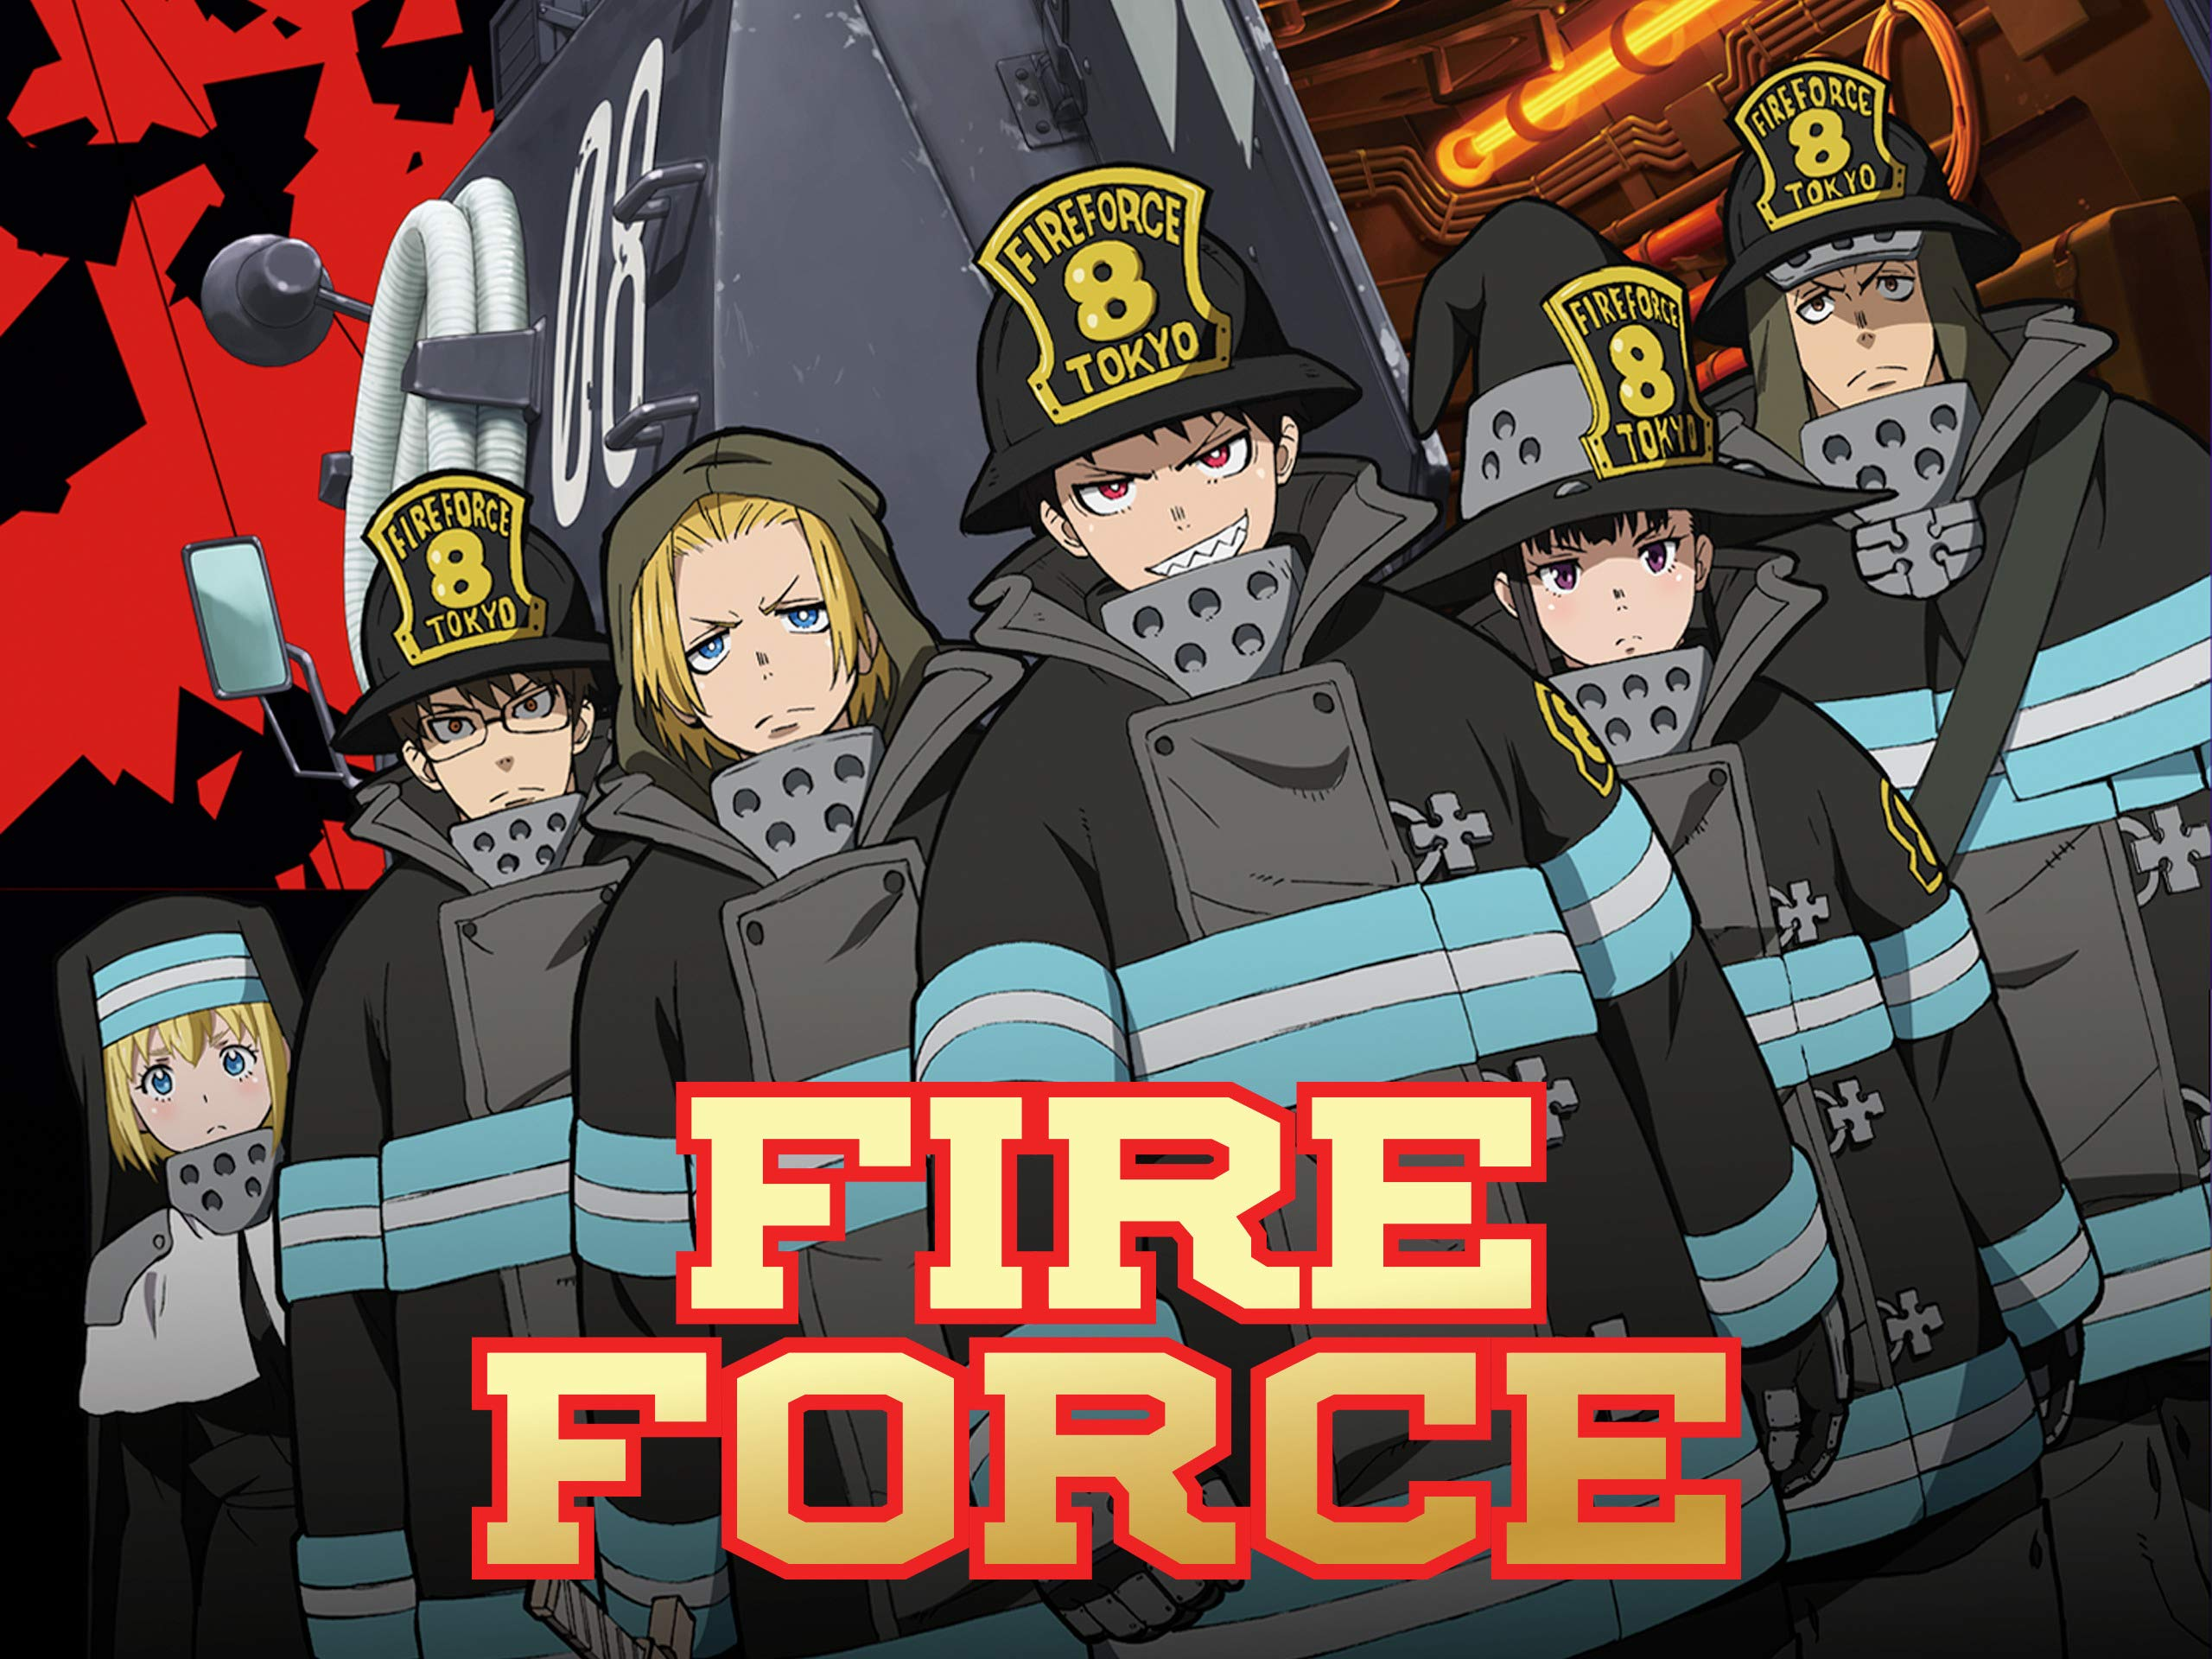 Watch Fire Force Season 1 Pt 2 Uncut Prime Video Feel free to send us your own wallpaper. watch fire force season 1 pt 2